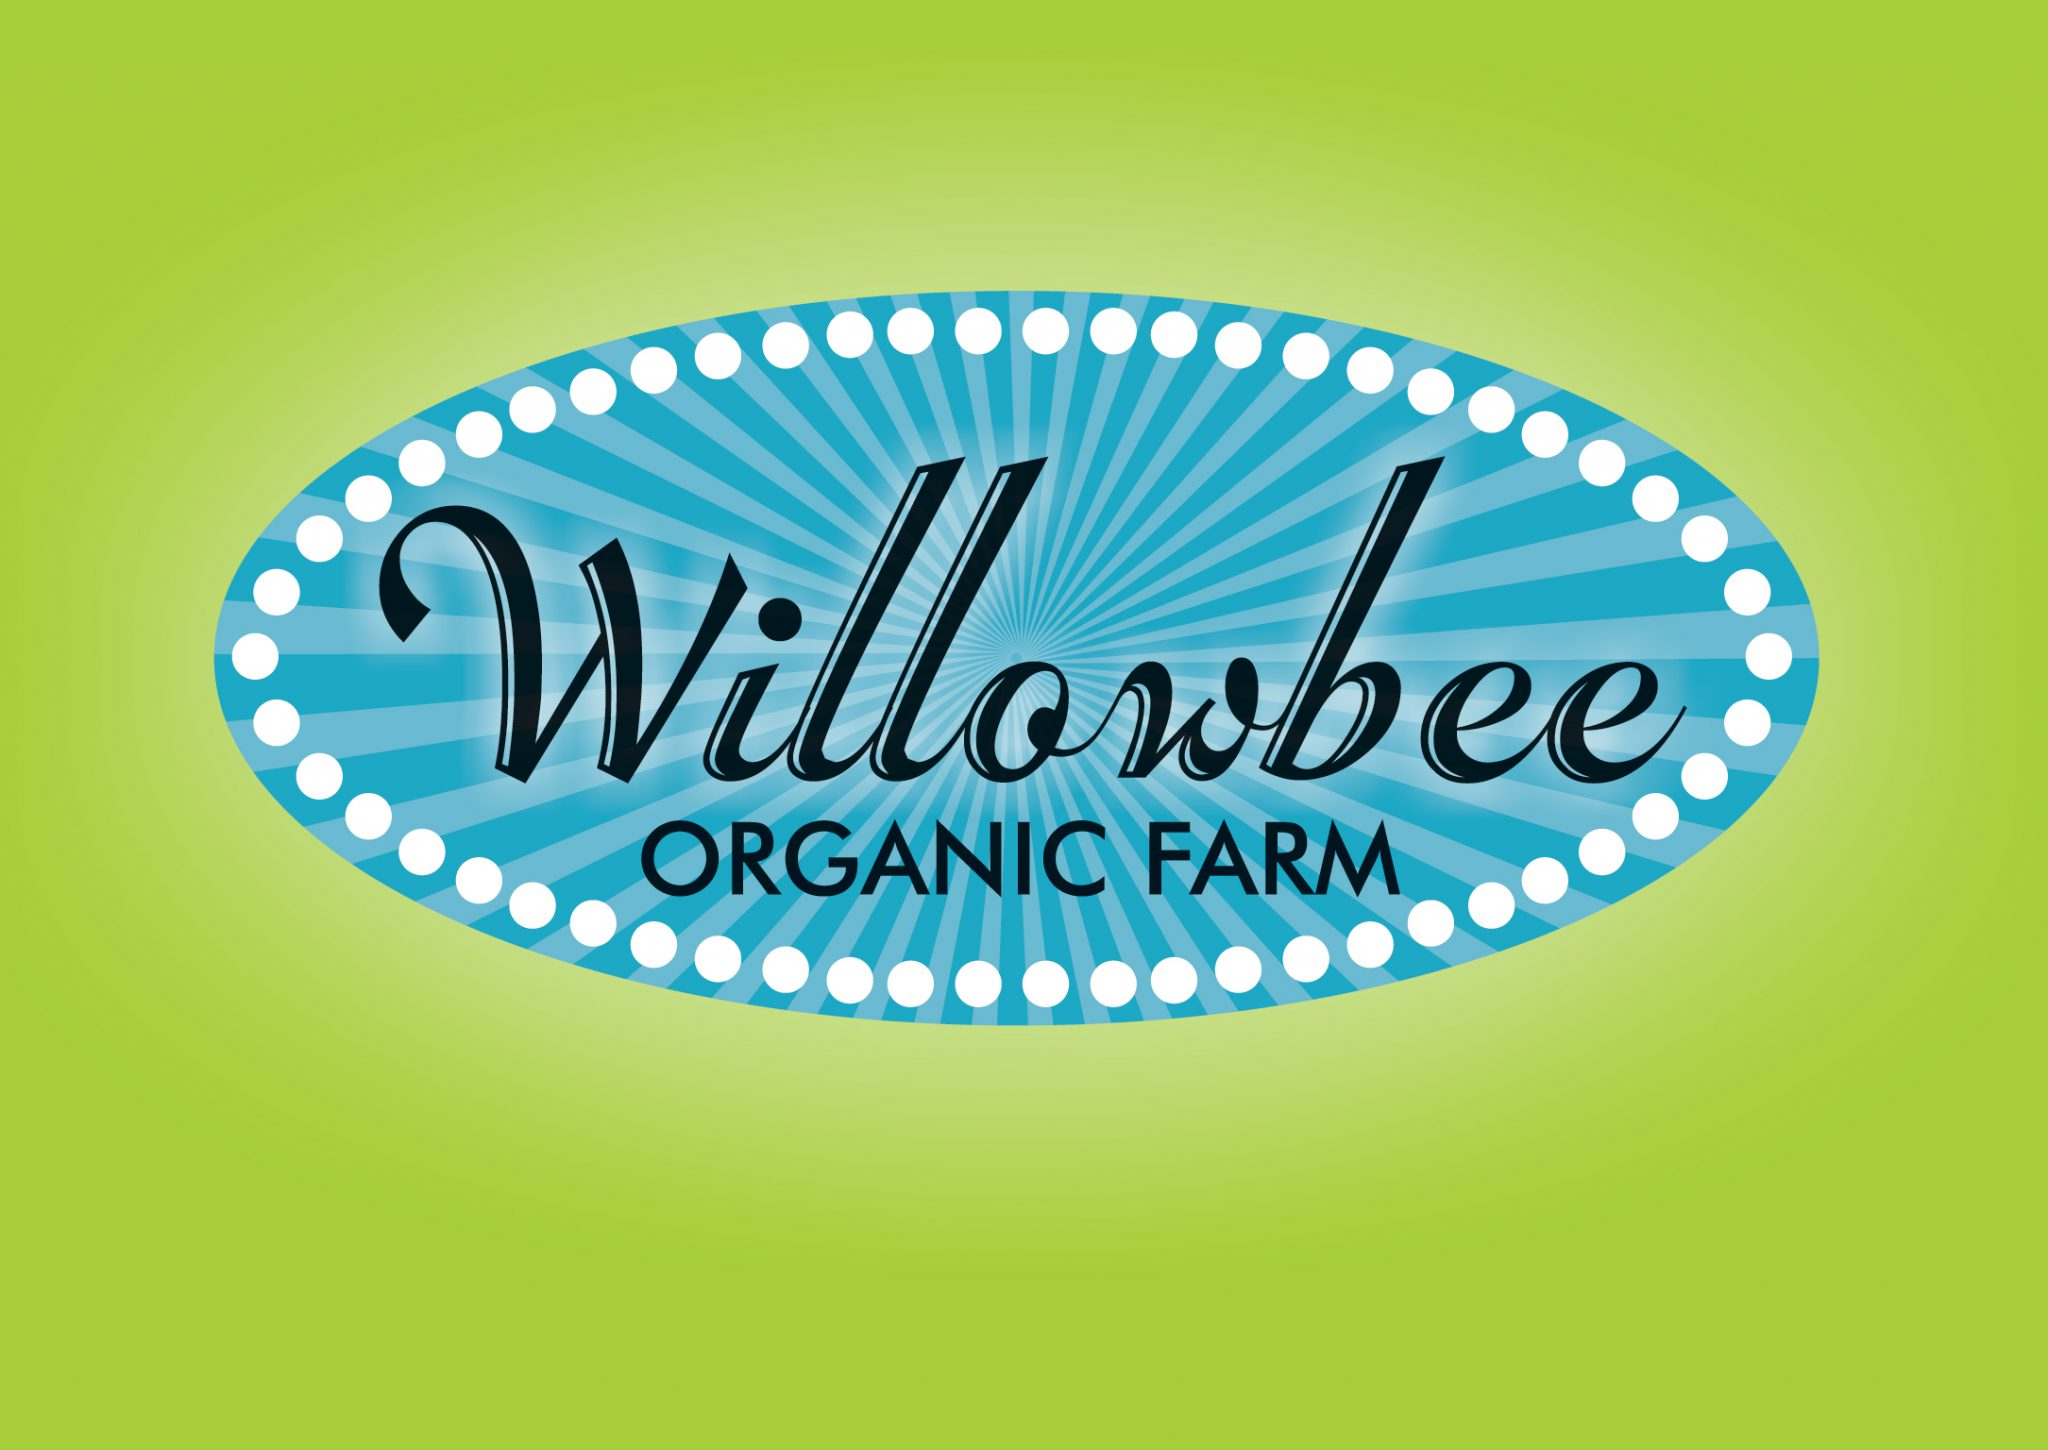 willowbee